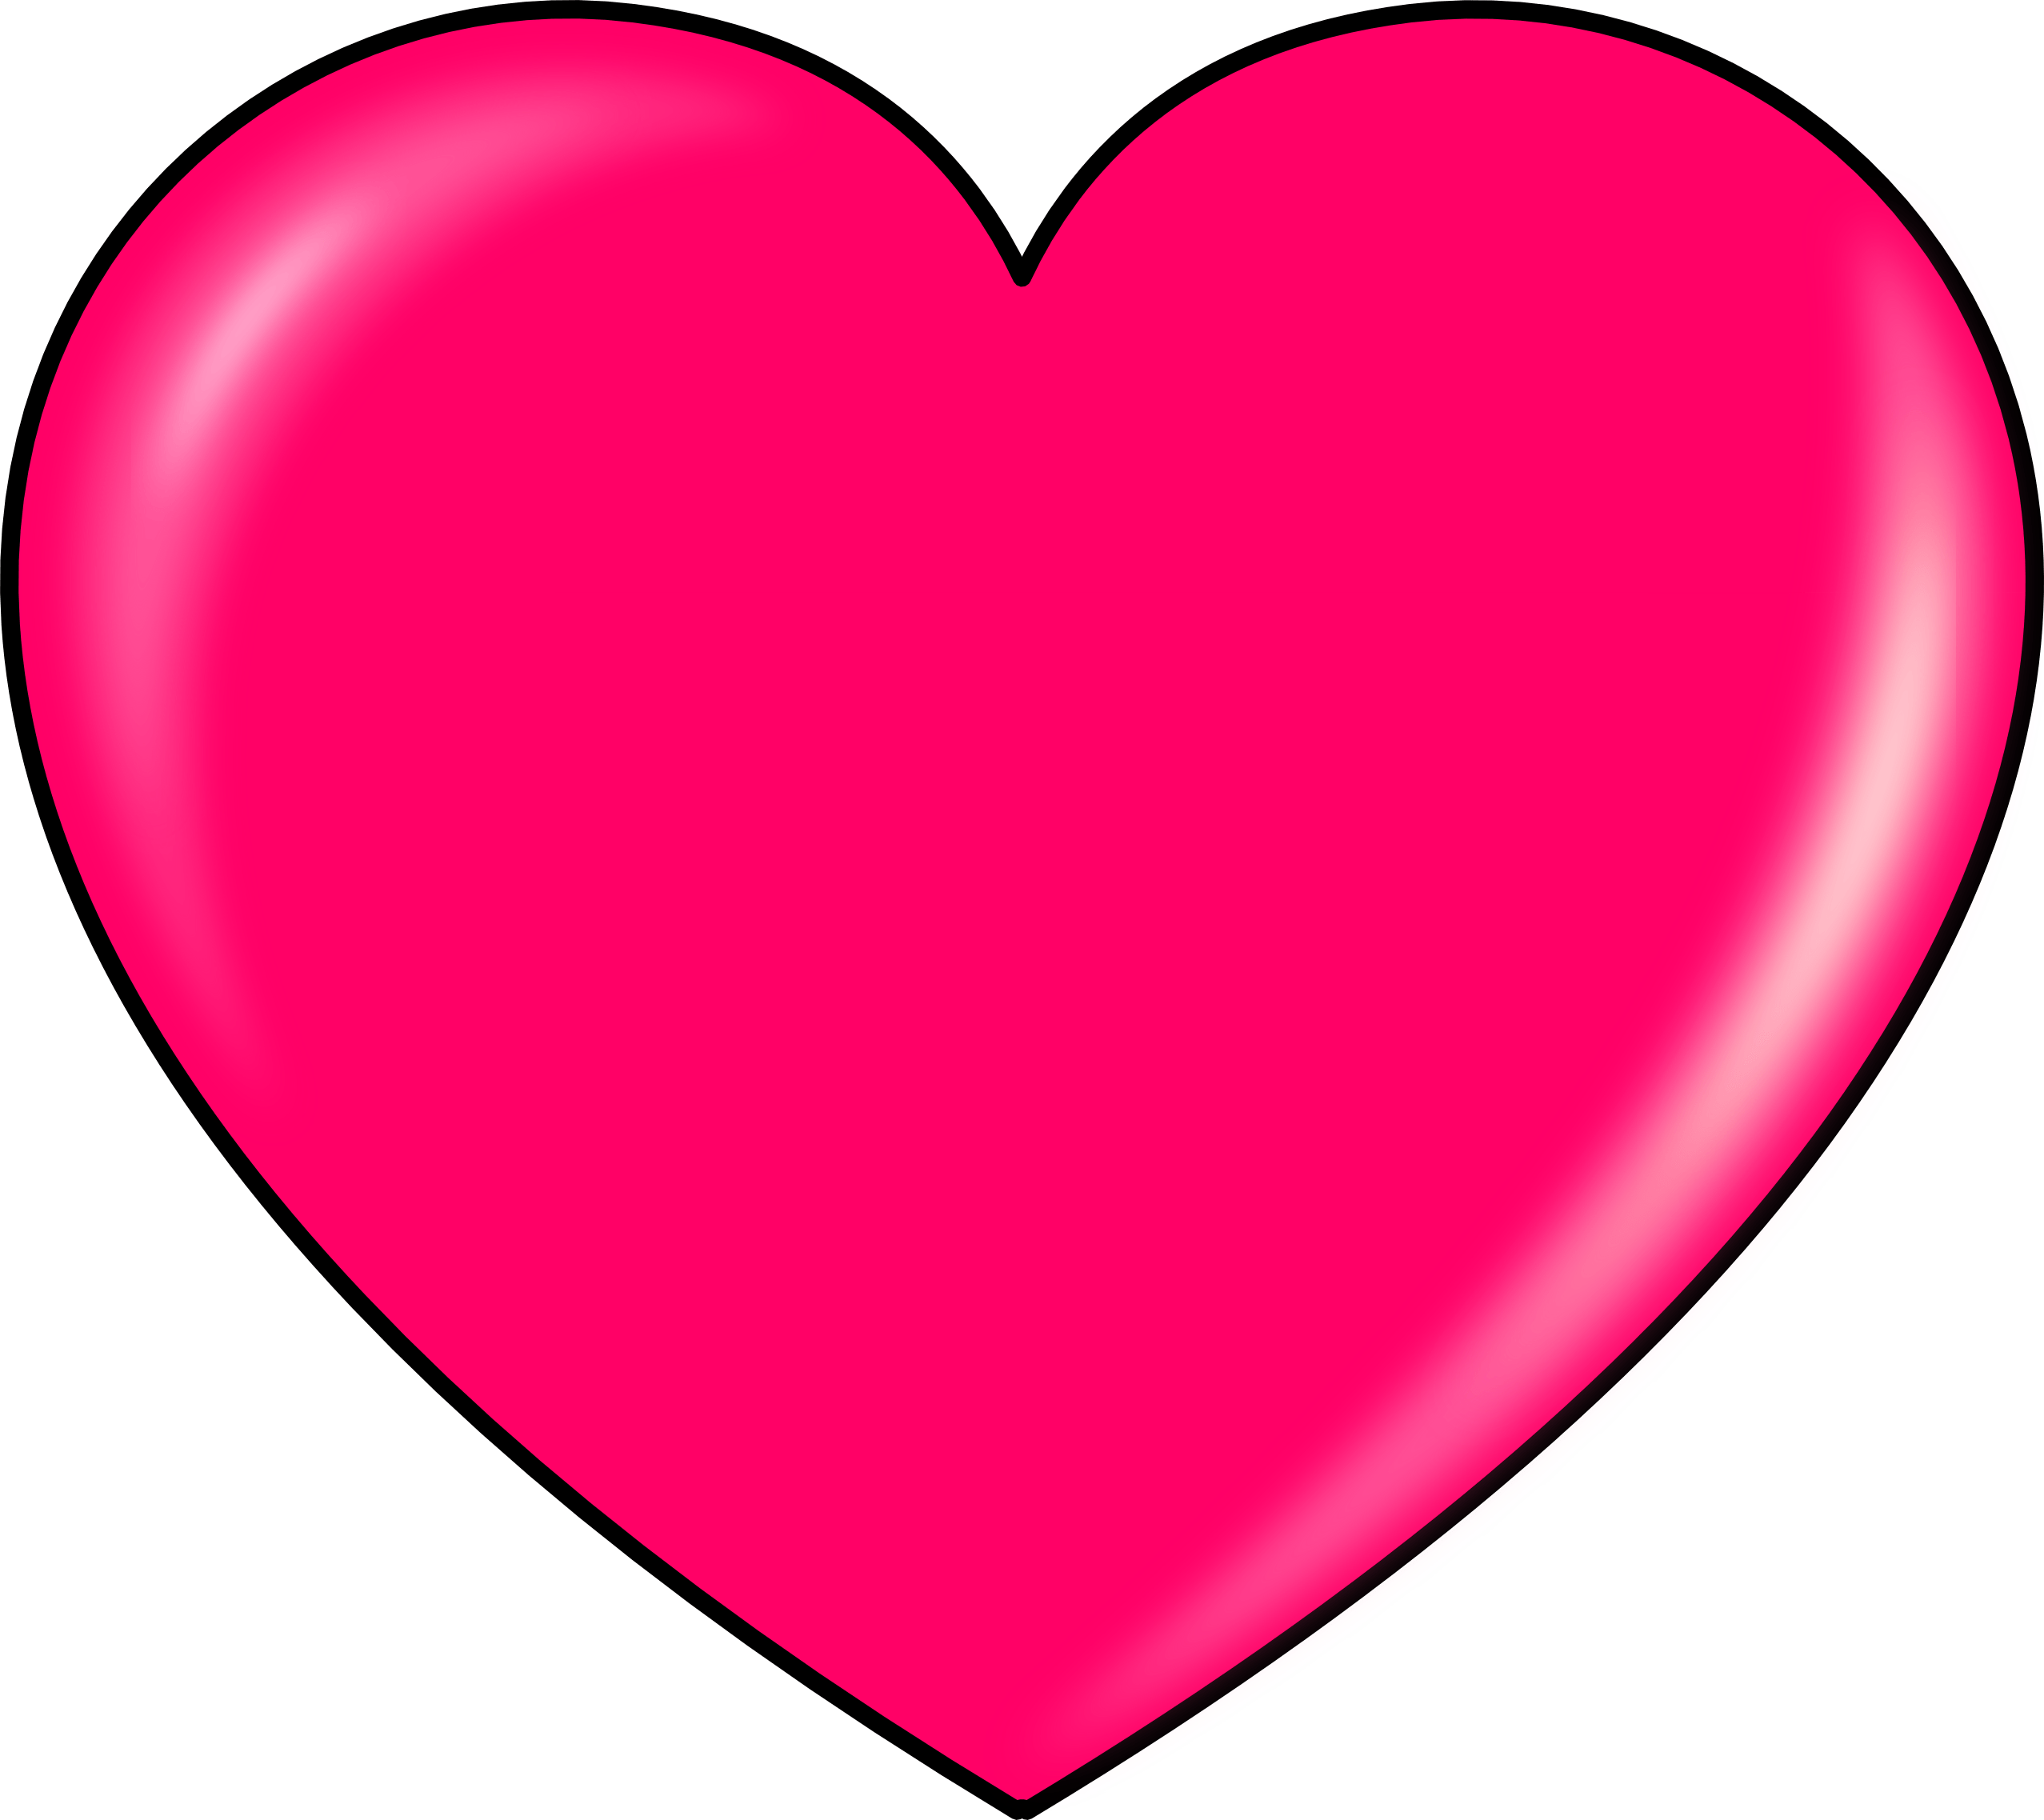 Image result for pink heart transparent images